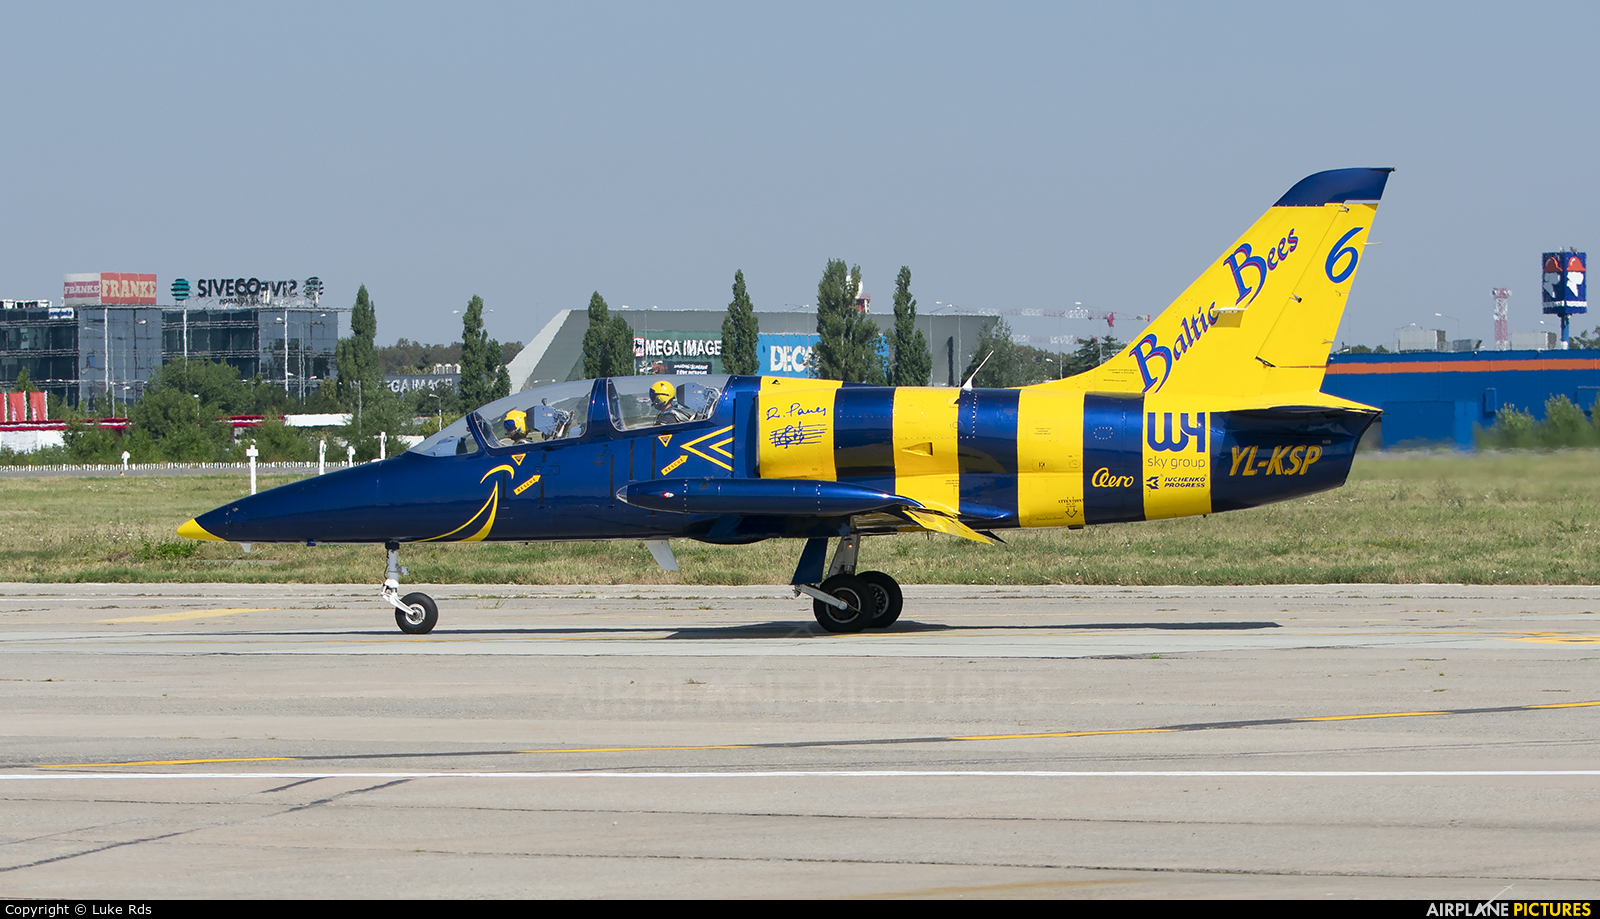 Baltic Bees Jet Team YL-KSP aircraft at Bucharest - Aurel Vlaicu Intl